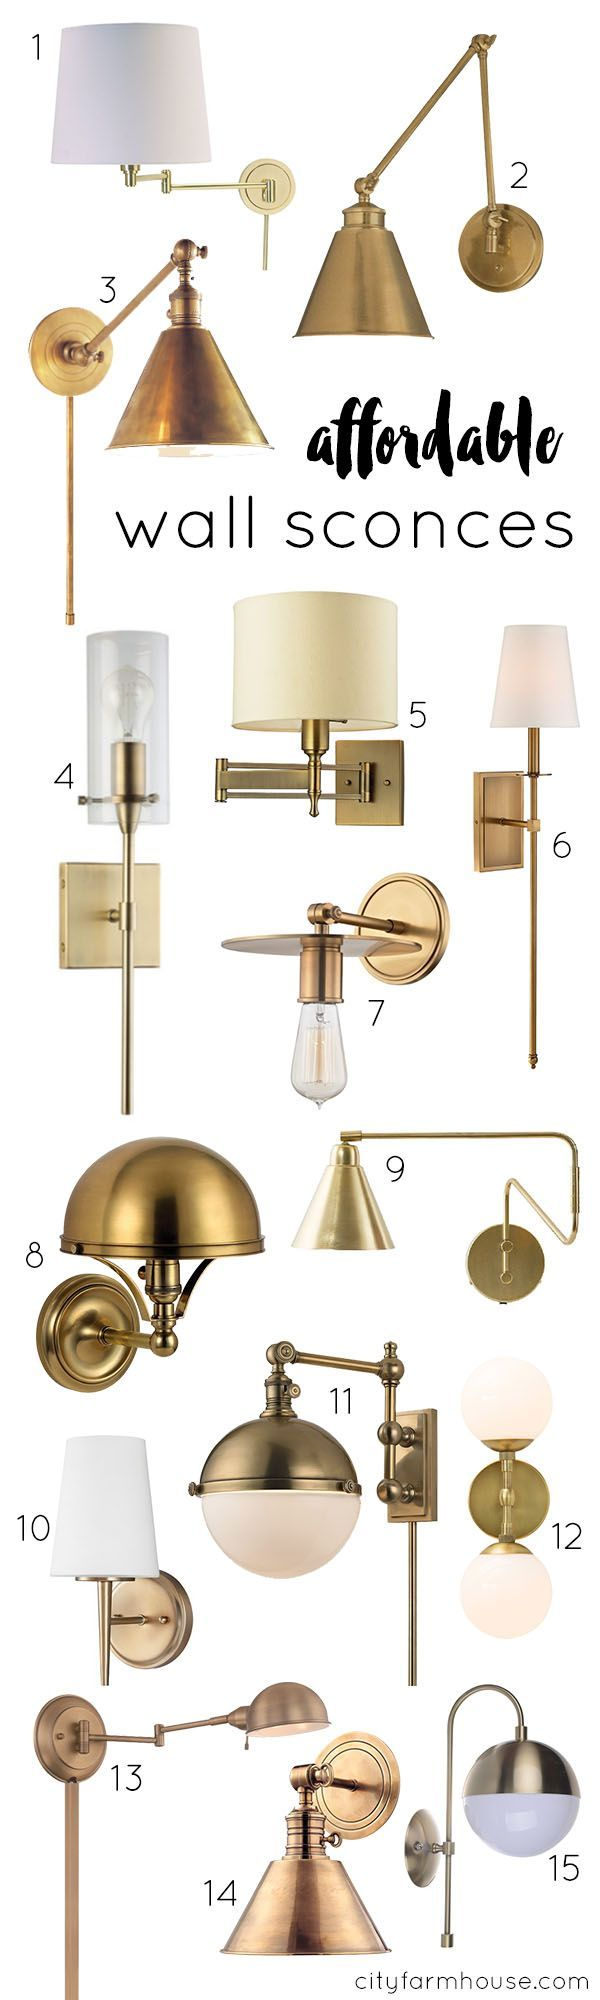 Stylish and affordable aged brass wall sconces ... on Discount Wall Sconces id=70943